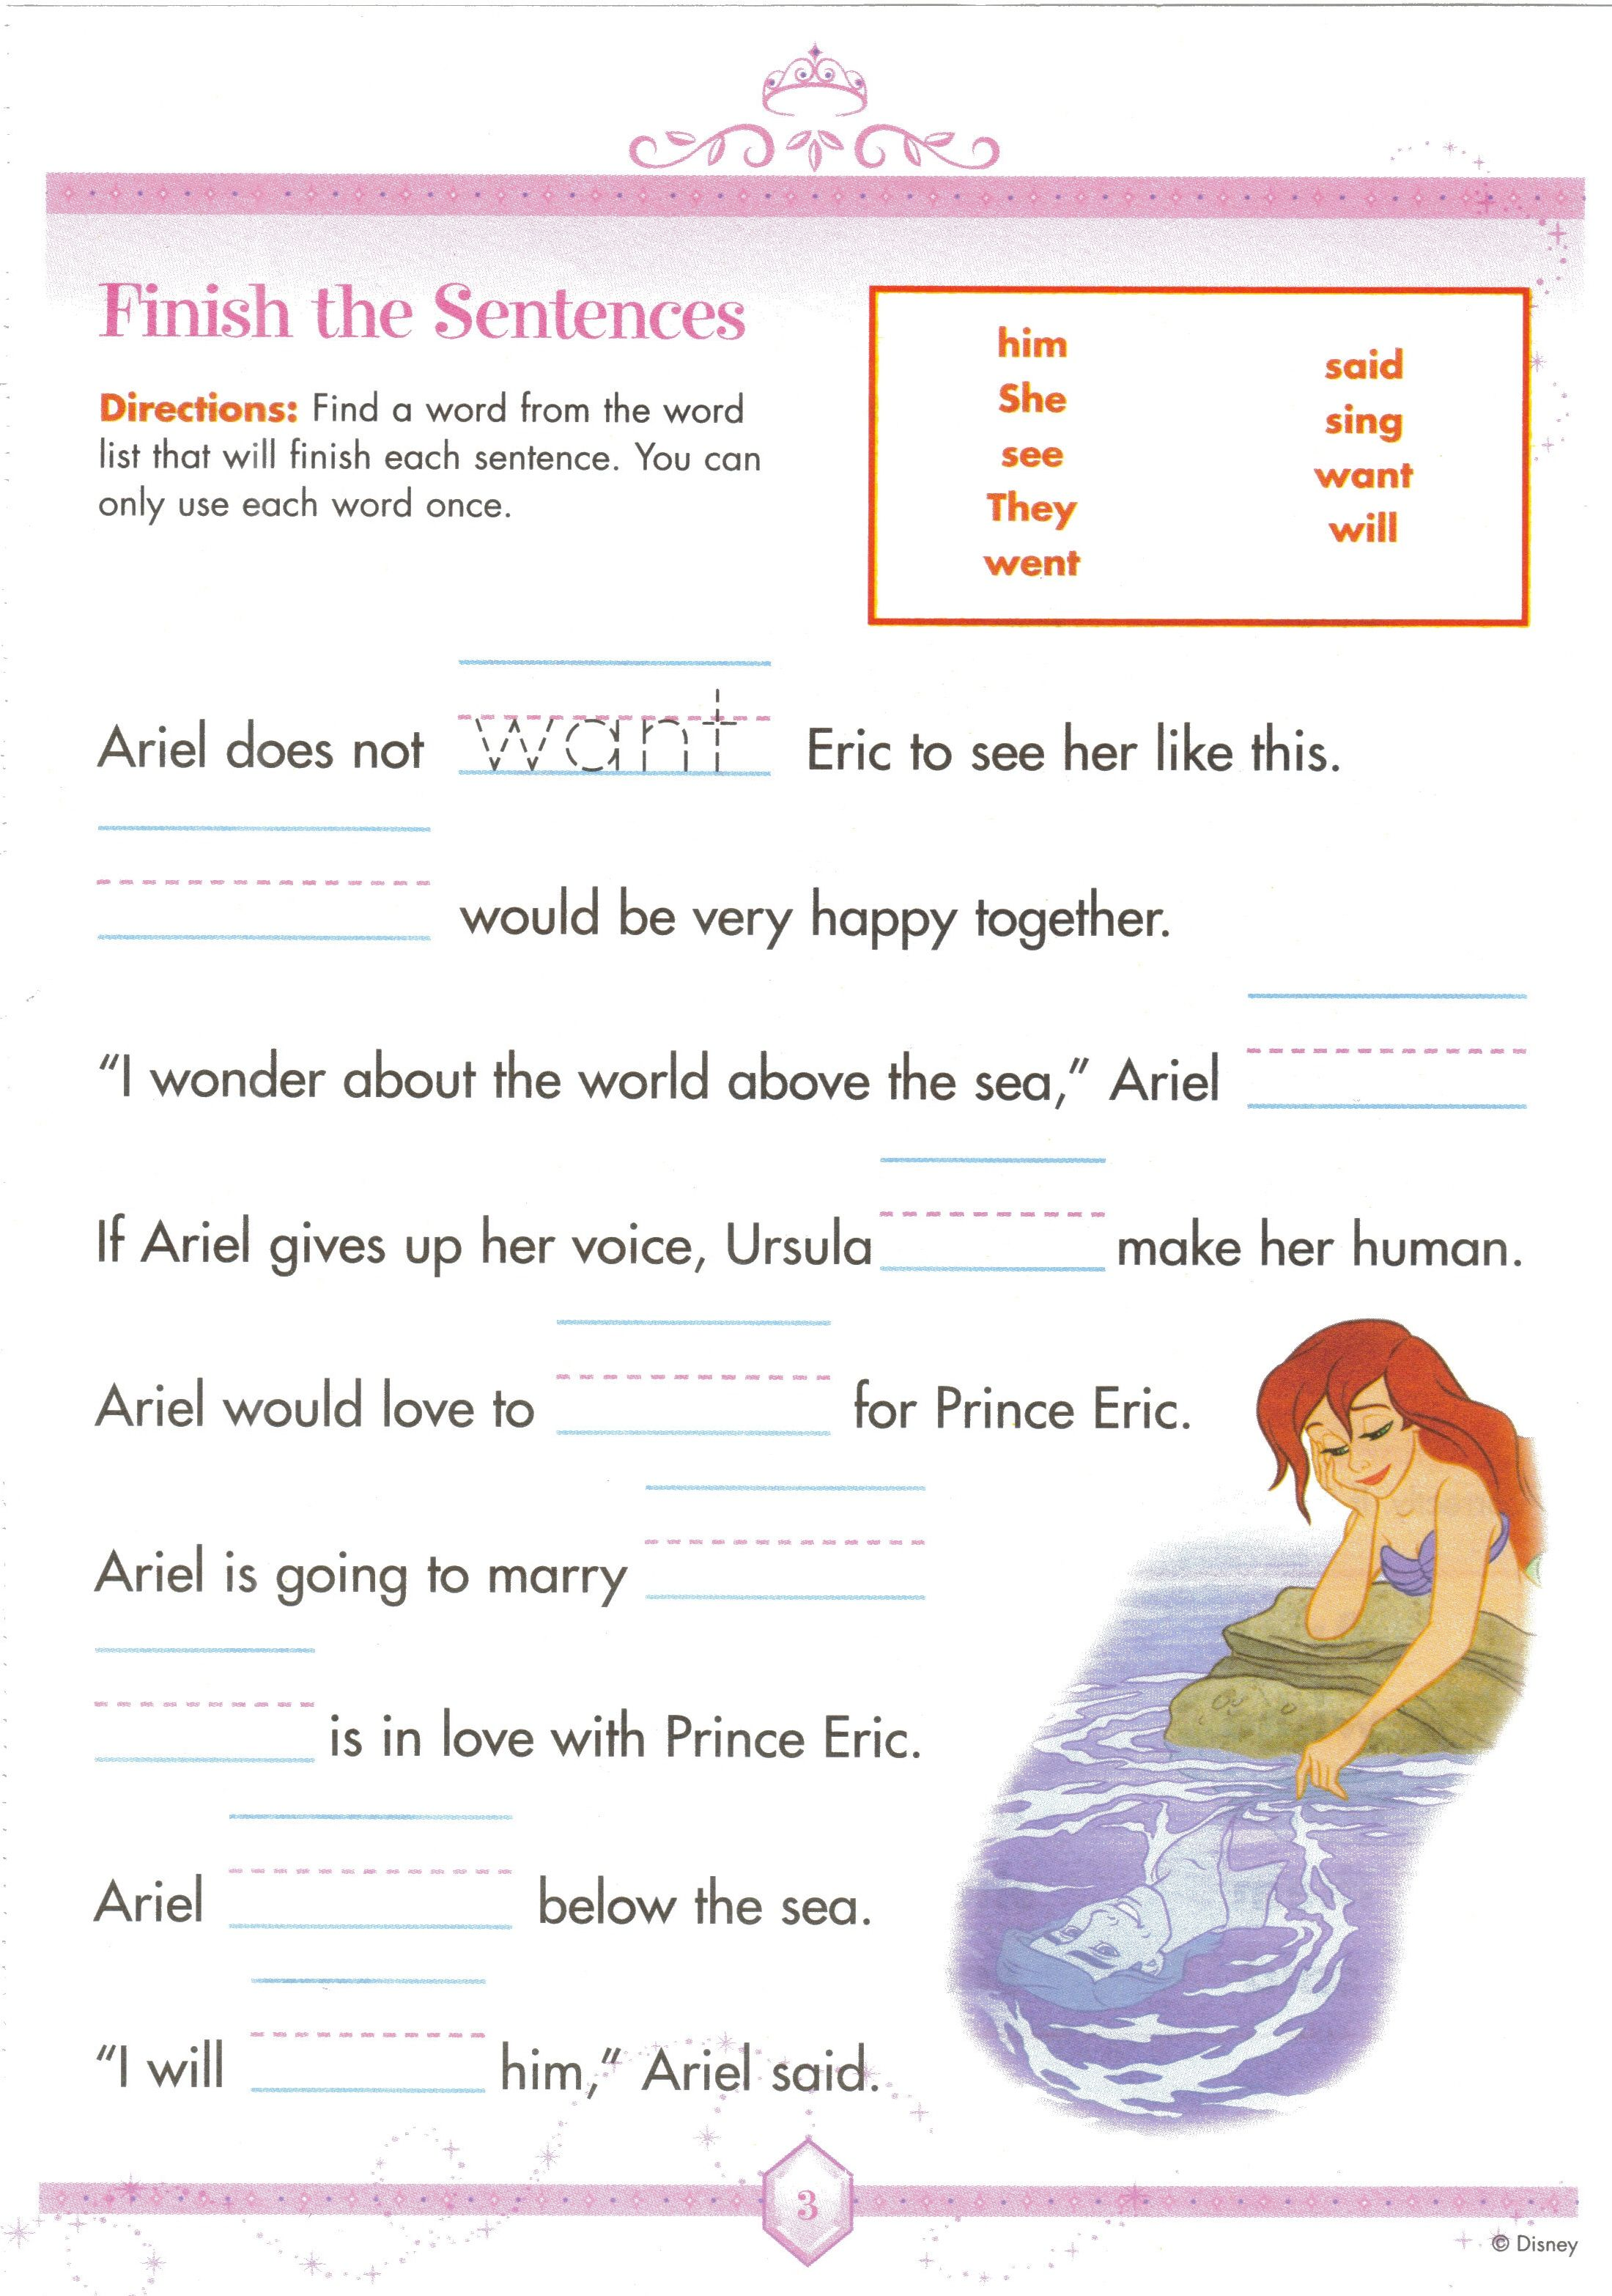 Weirdmailus  Fascinating  Images About Worksheets On Pinterest  Fun Facts For Kids  With Magnificent  Images About Worksheets On Pinterest  Fun Facts For Kids Earth Day Worksheets And Jungles With Nice Word Search Puzzles Worksheets Also Subtraction With Pictures Worksheets In Addition Free Worksheets Nd Grade And Free Printable Cursive Worksheets For Rd Grade As Well As Isotherm Worksheet Additionally Clock Fractions Worksheet From Pinterestcom With Weirdmailus  Magnificent  Images About Worksheets On Pinterest  Fun Facts For Kids  With Nice  Images About Worksheets On Pinterest  Fun Facts For Kids Earth Day Worksheets And Jungles And Fascinating Word Search Puzzles Worksheets Also Subtraction With Pictures Worksheets In Addition Free Worksheets Nd Grade From Pinterestcom